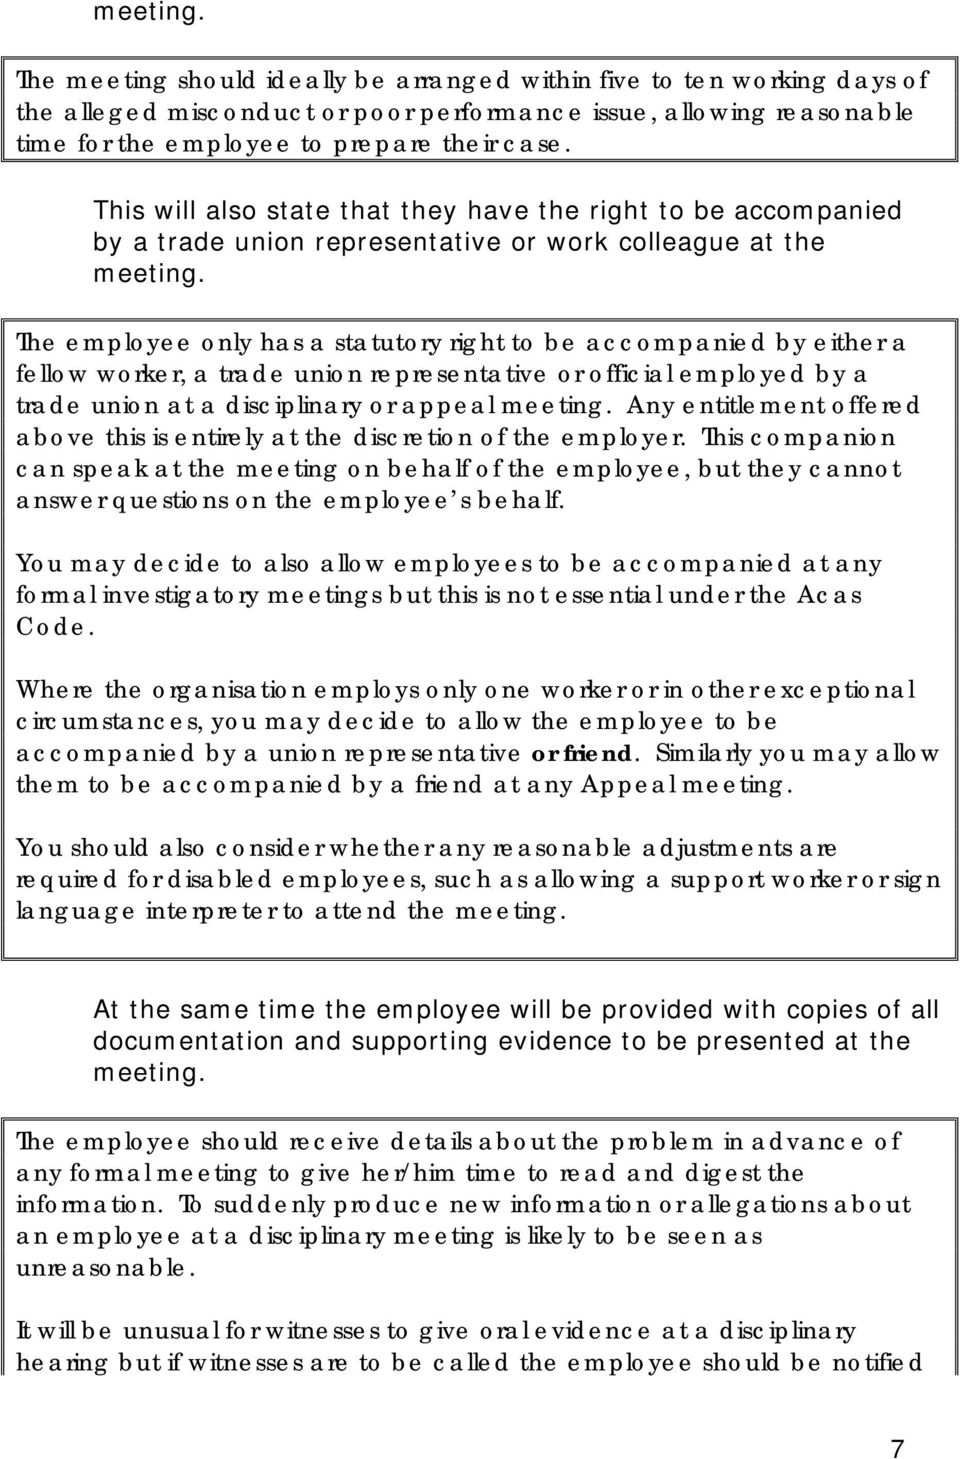 The employee only has a statutory right to be accompanied by either a fellow worker, a trade union representative or official employed by a trade union at a disciplinary or appeal meeting.